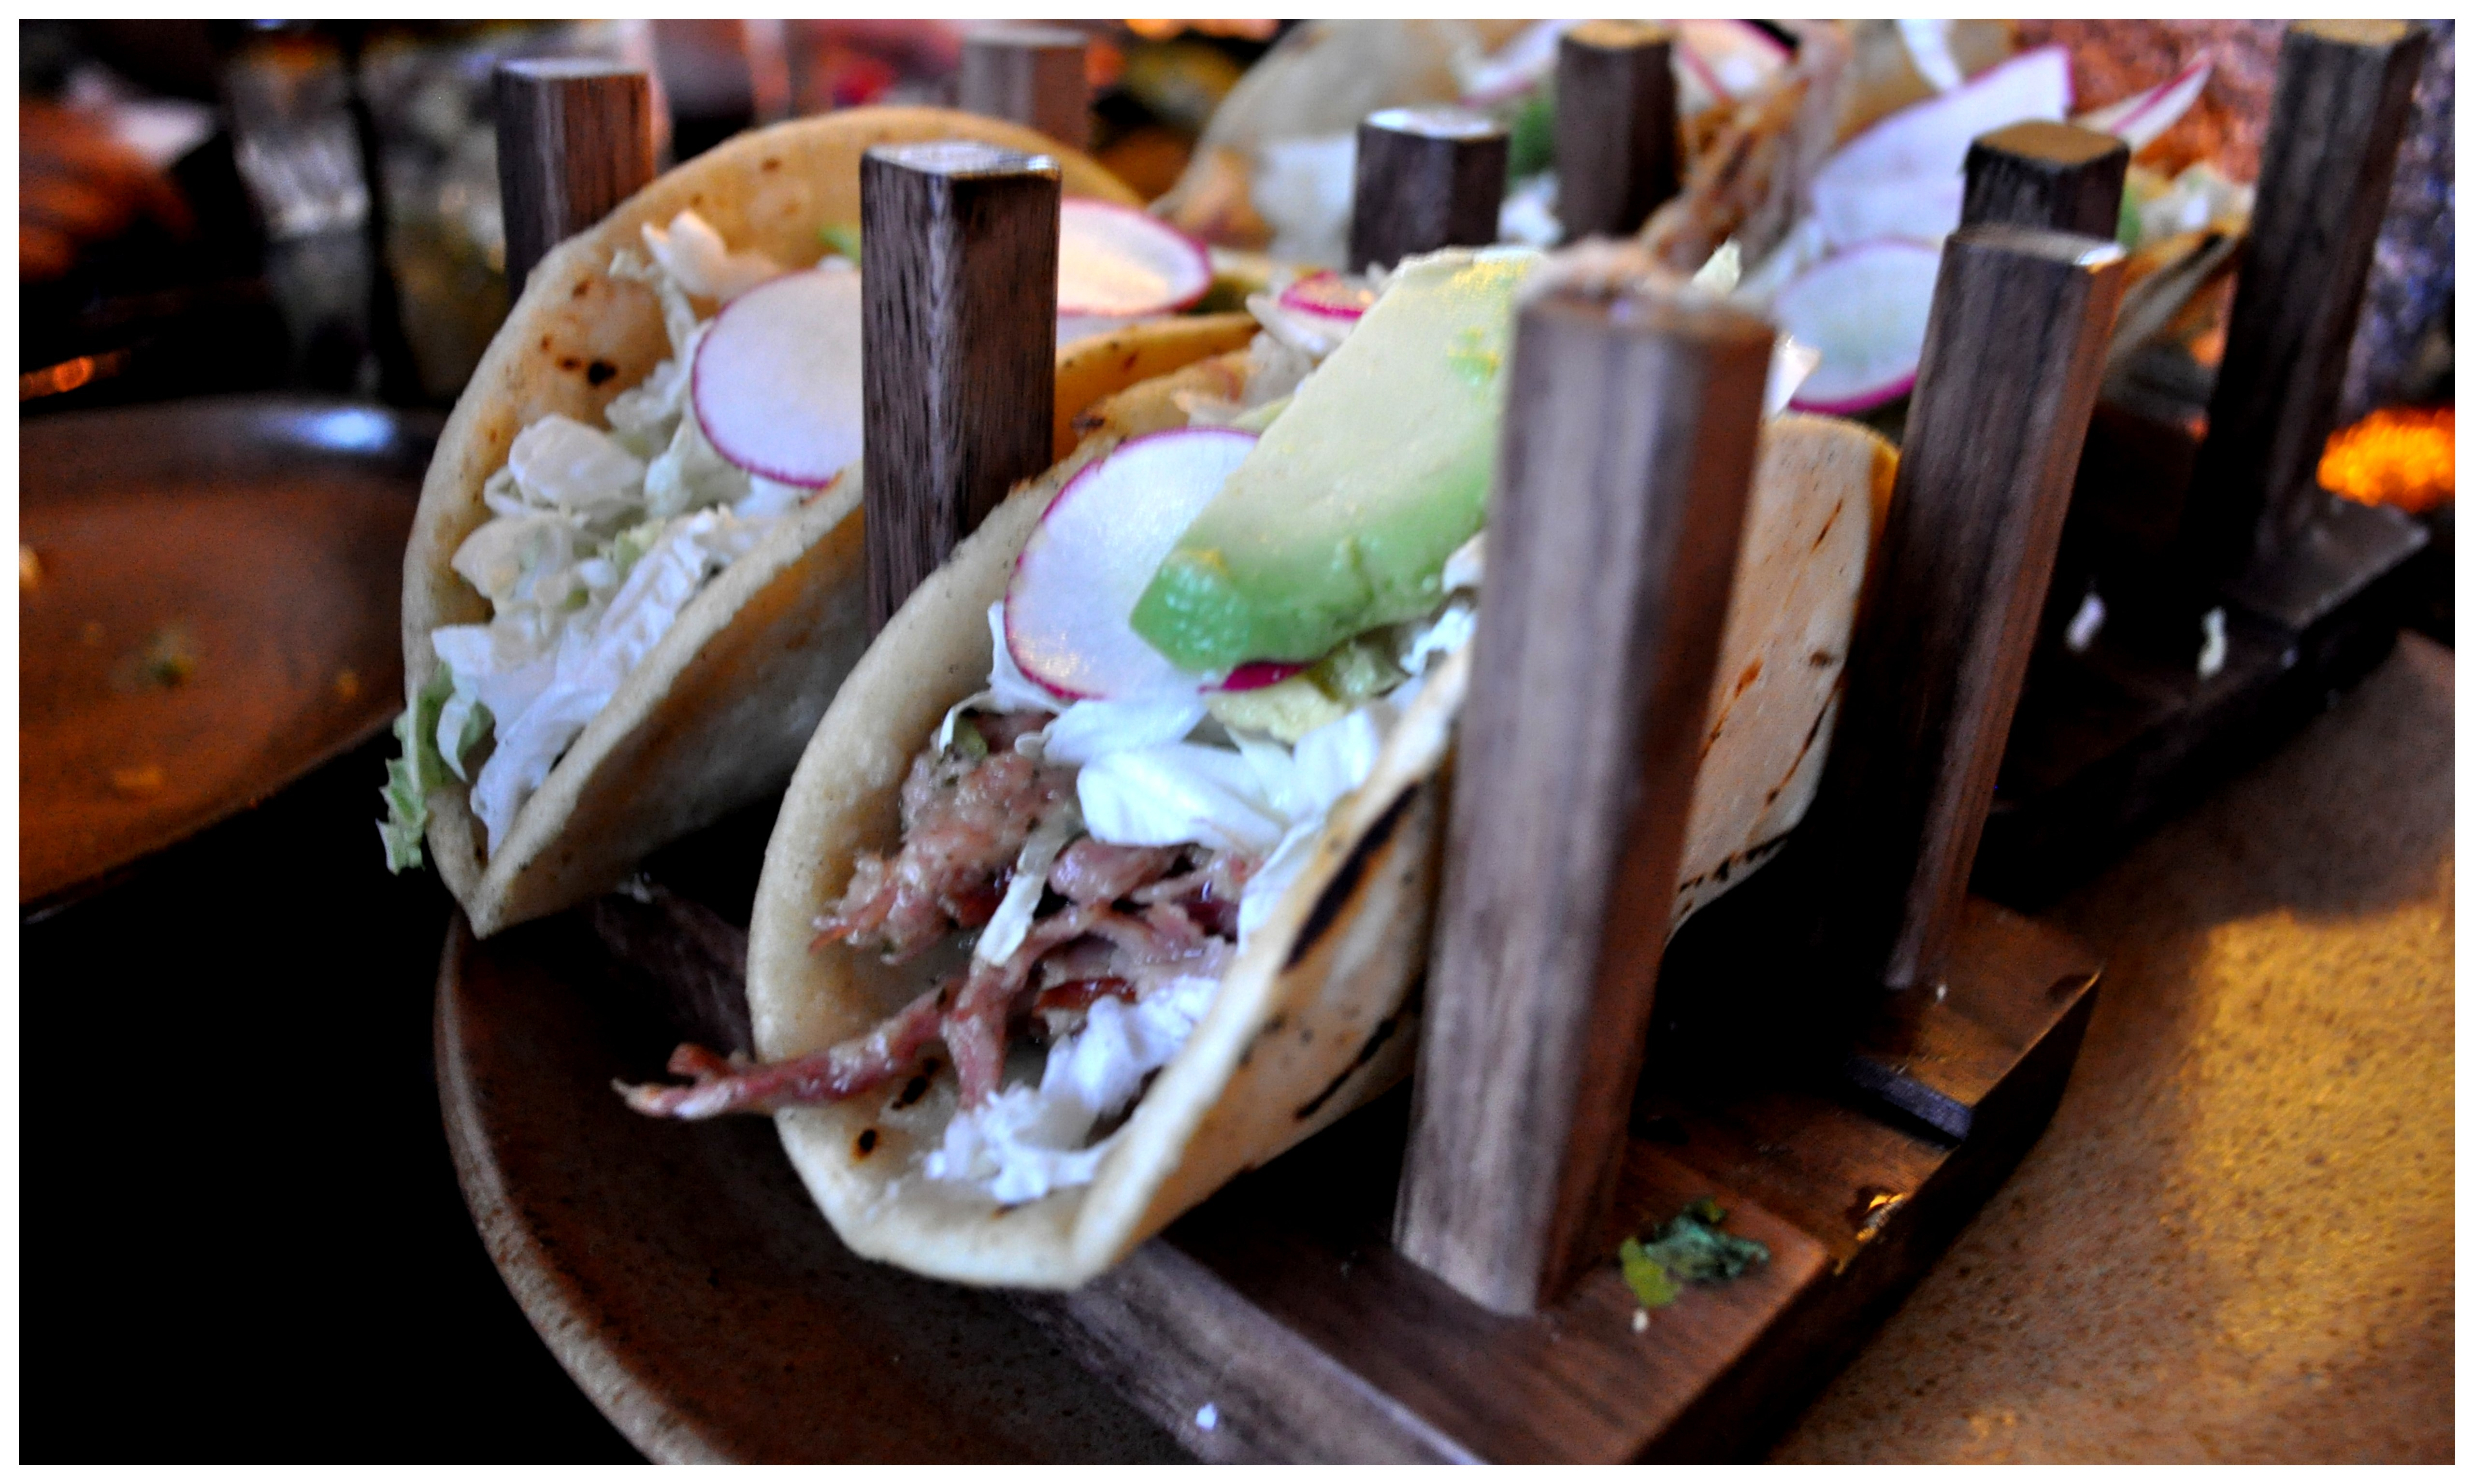 These Tacos Filled With Carnitas Pulled Pork Come Courtesy Of Temazcal Todd Halls Newest Venture Located In Fort Point To Be Honest I Wasnt Overly